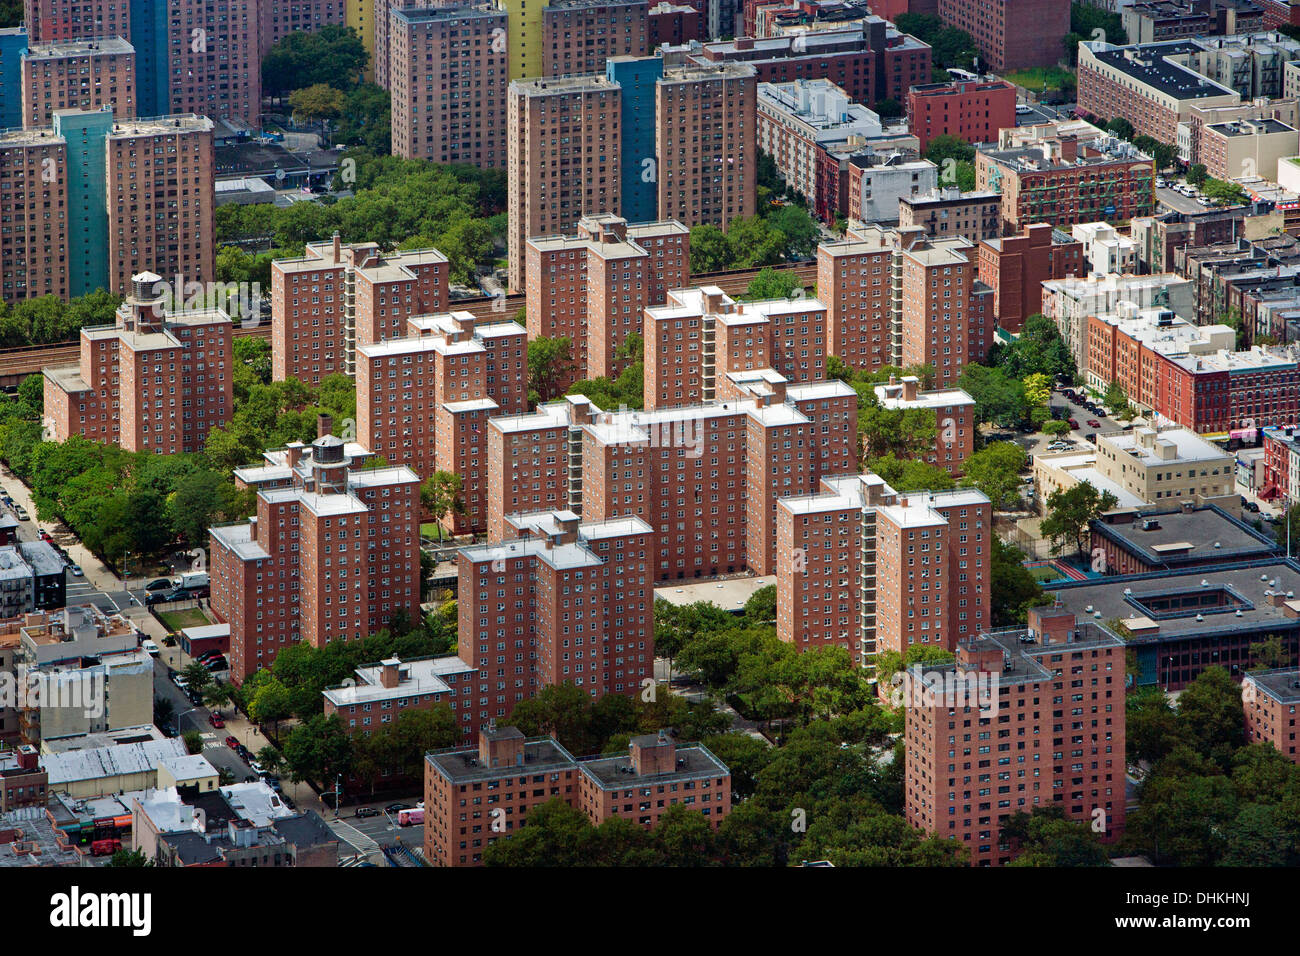 Stock Photo   Aerial Photograph Residential High Rise Apartment Buildings  Harlem, Manhattan, New York City